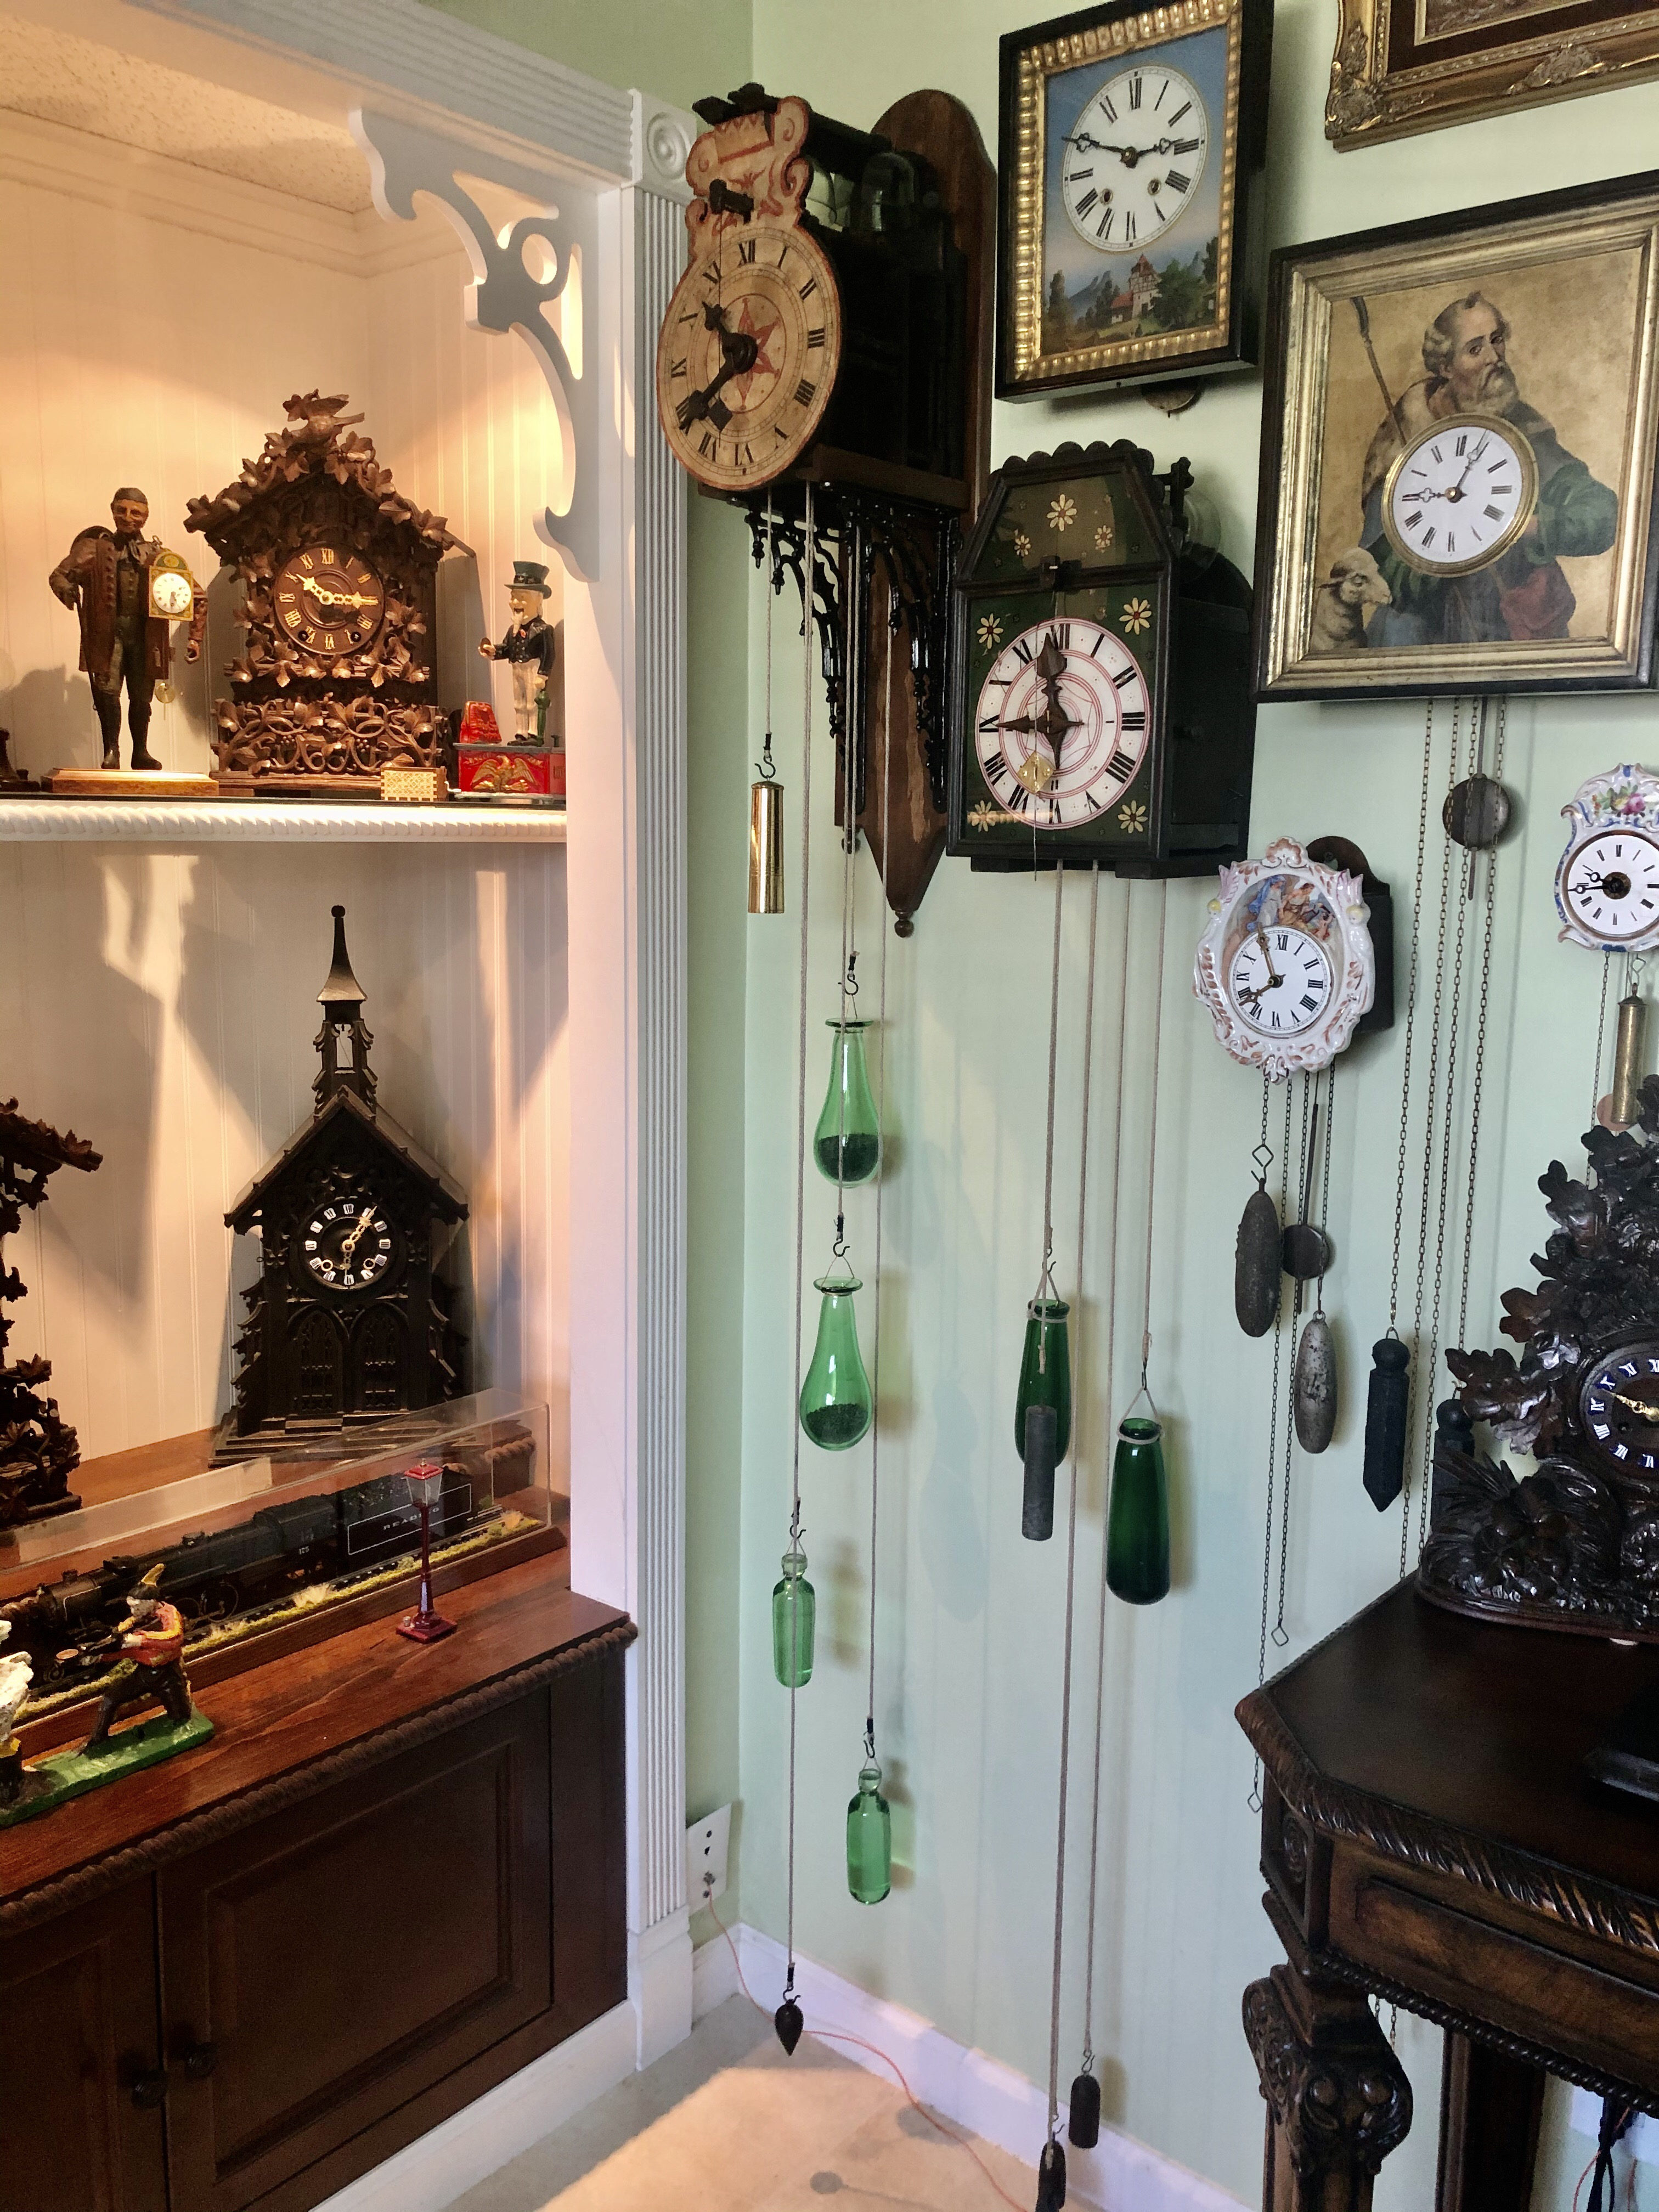 1700's Black Forest glass bell clock